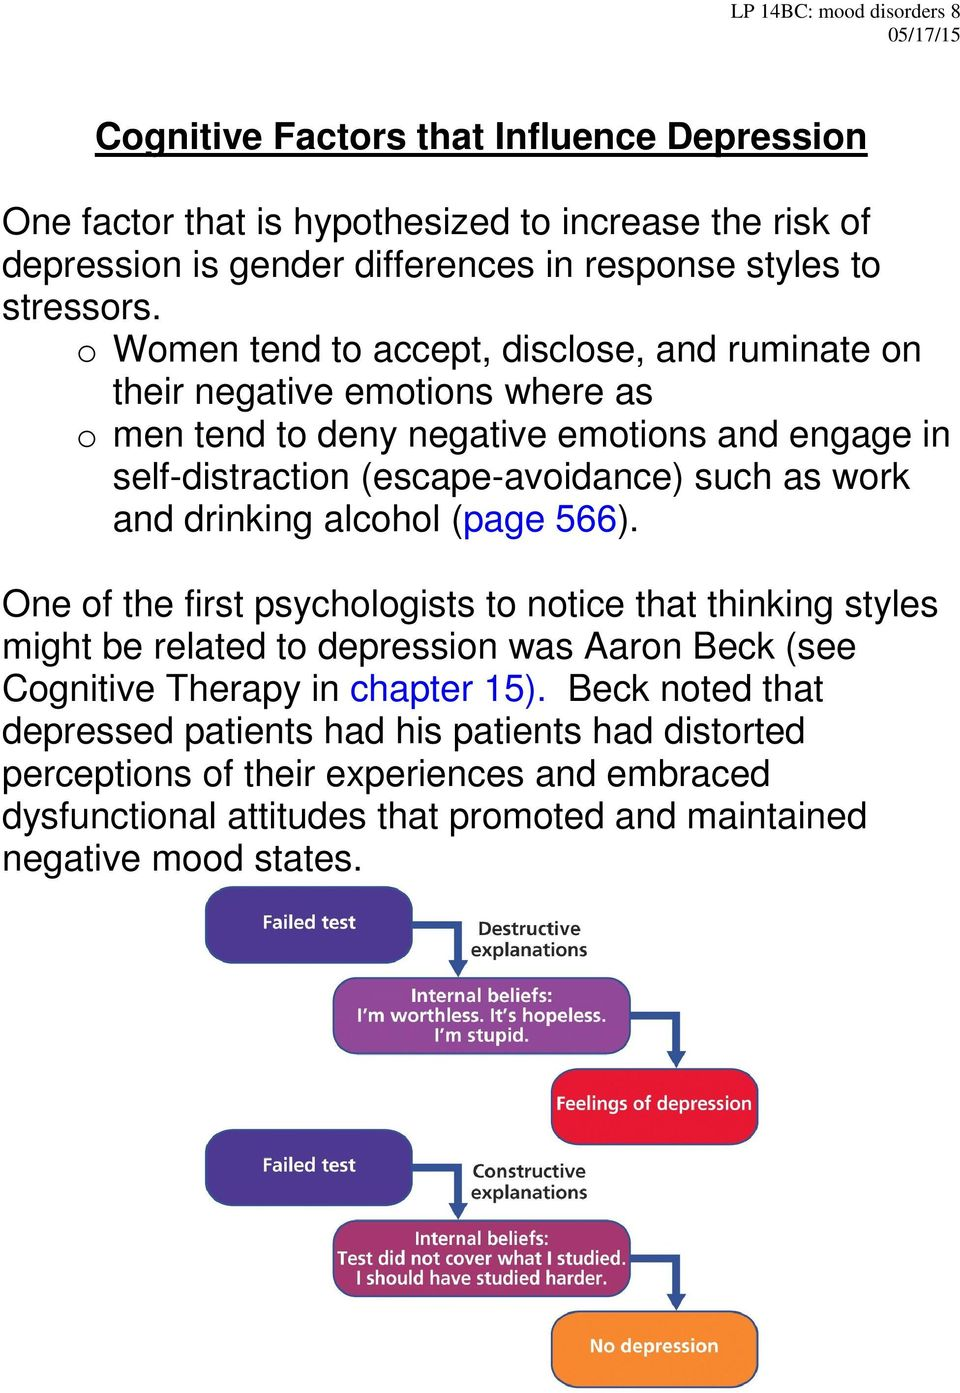 o Women tend to accept, disclose, and ruminate on their negative emotions where as o men tend to deny negative emotions and engage in self-distraction (escape-avoidance) such as work